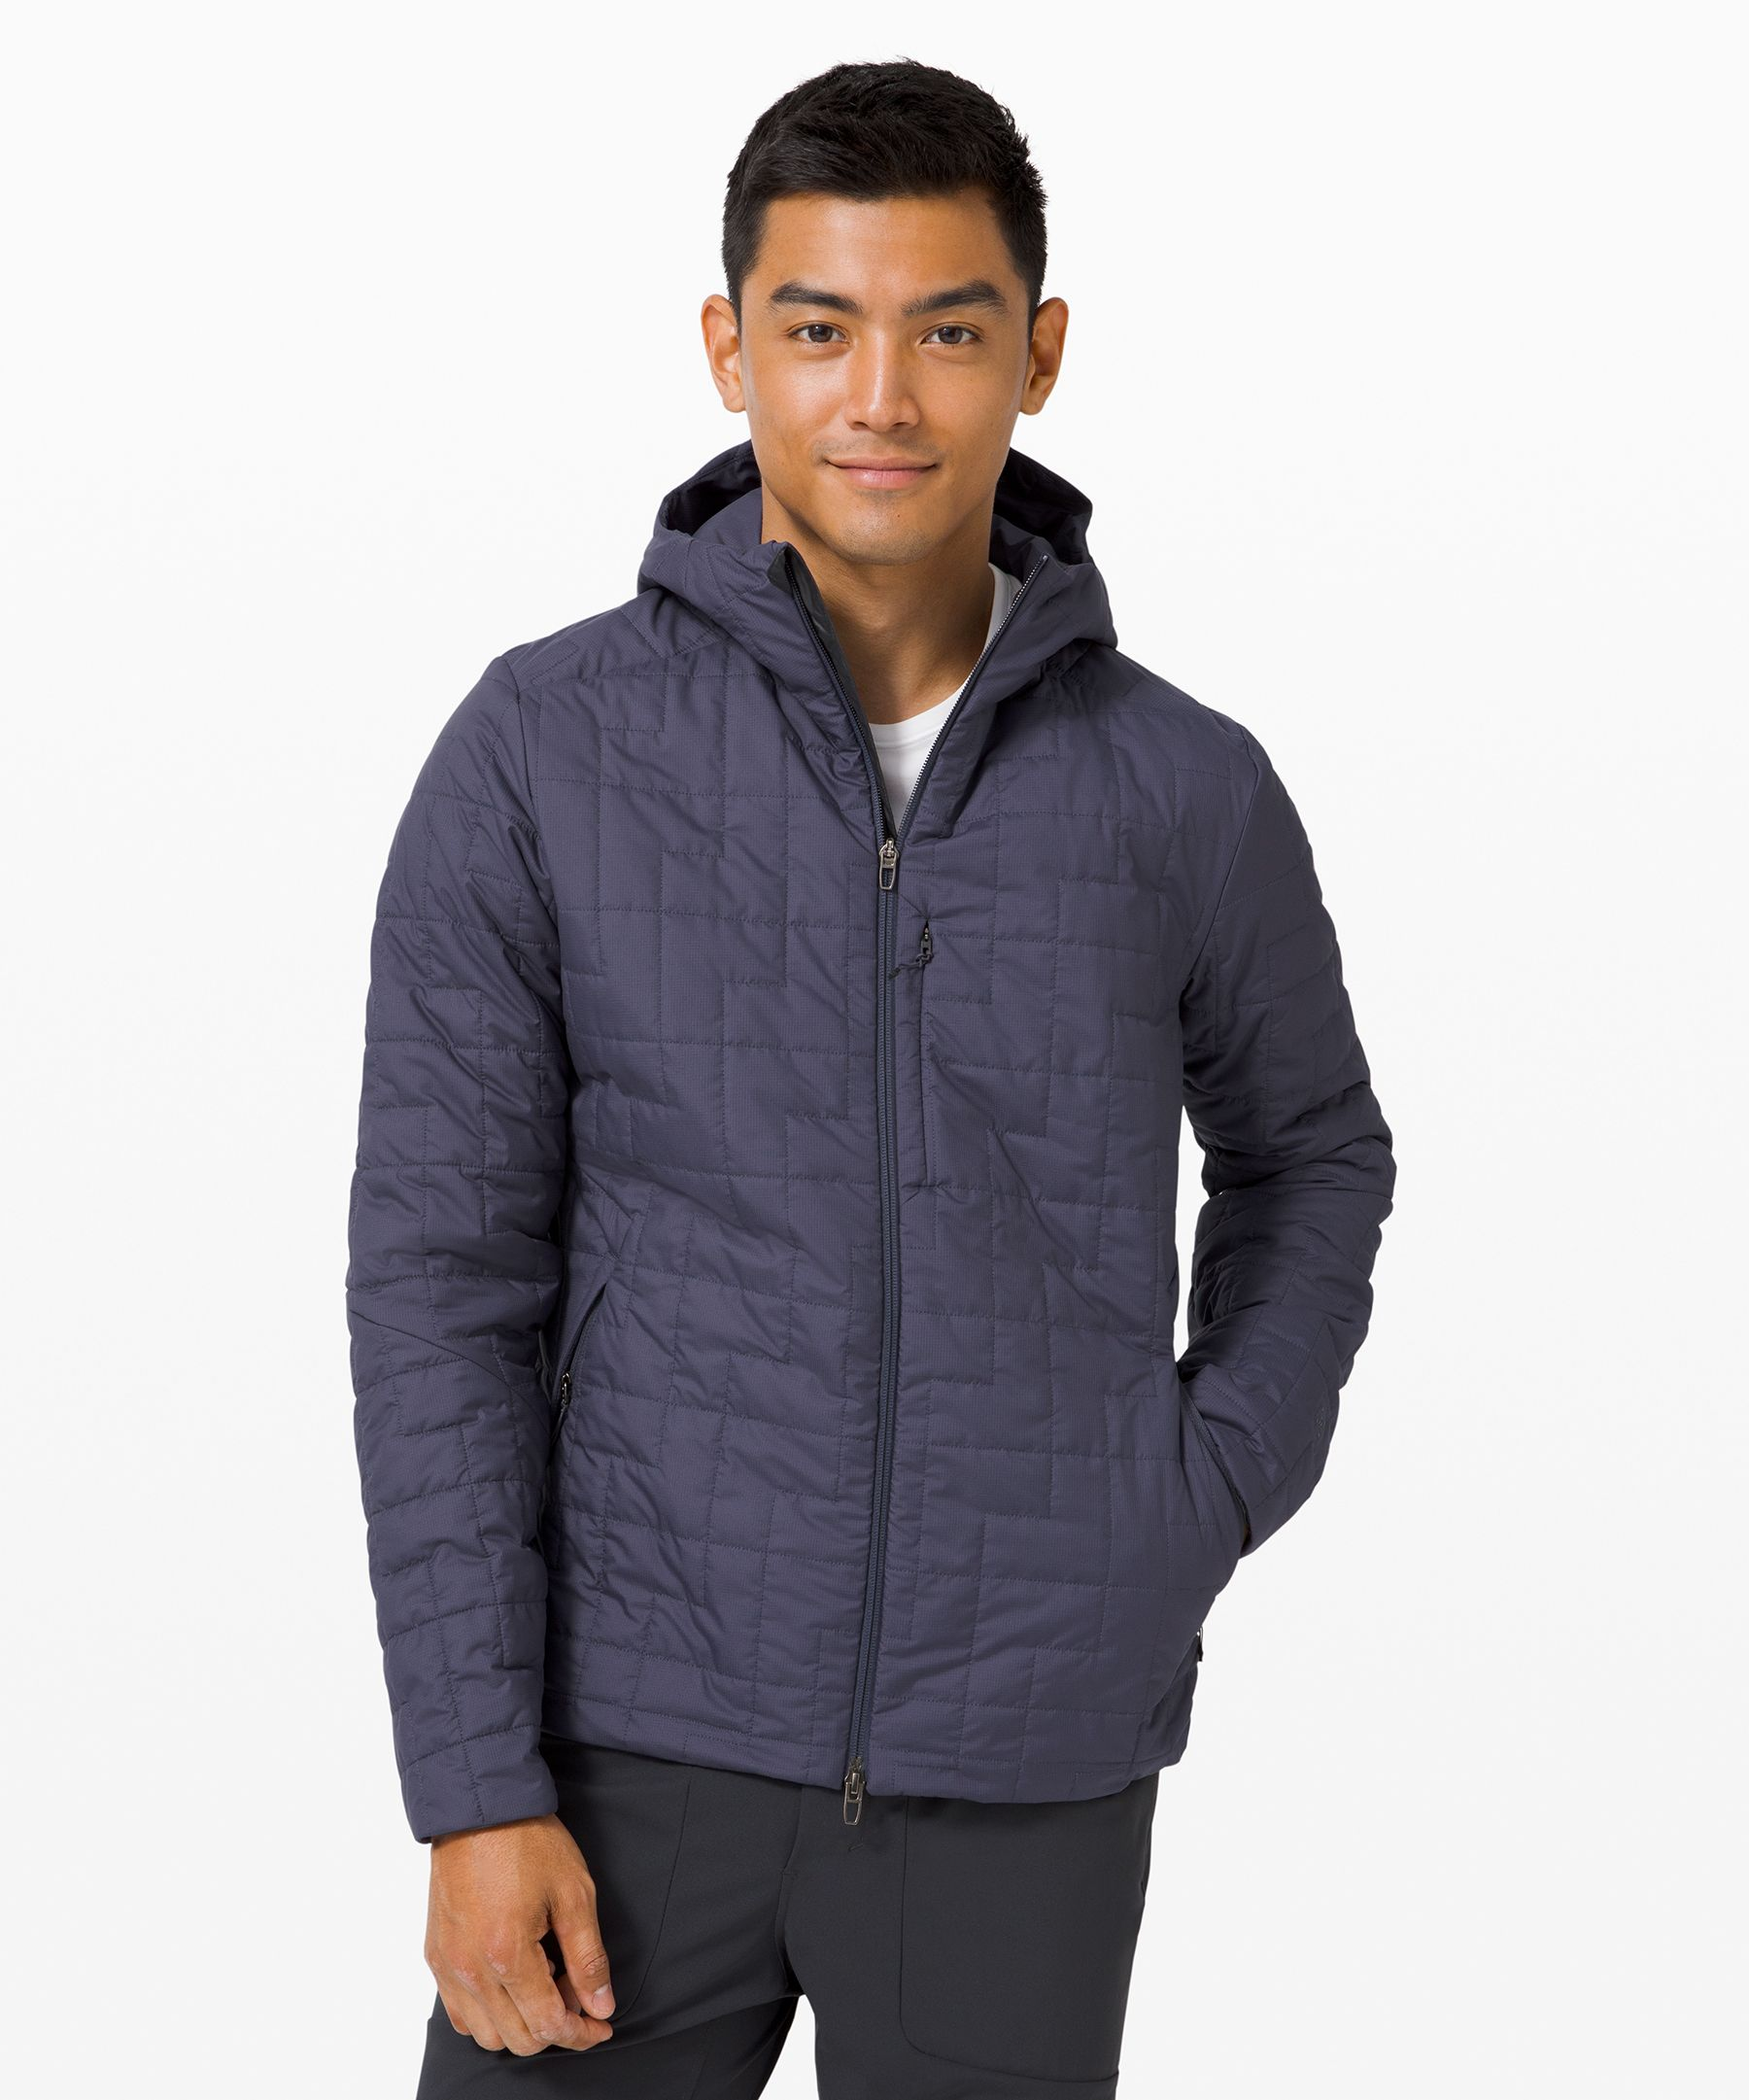 Reach for this water-repellent  hoodie as you head out the  door to greet slate coloured  skies. DWR-treated fabric  shields you from wind and  light rain, while Primaloft®  insulation provides weightless  warmth so you can power  through whatever the weather  has in store.